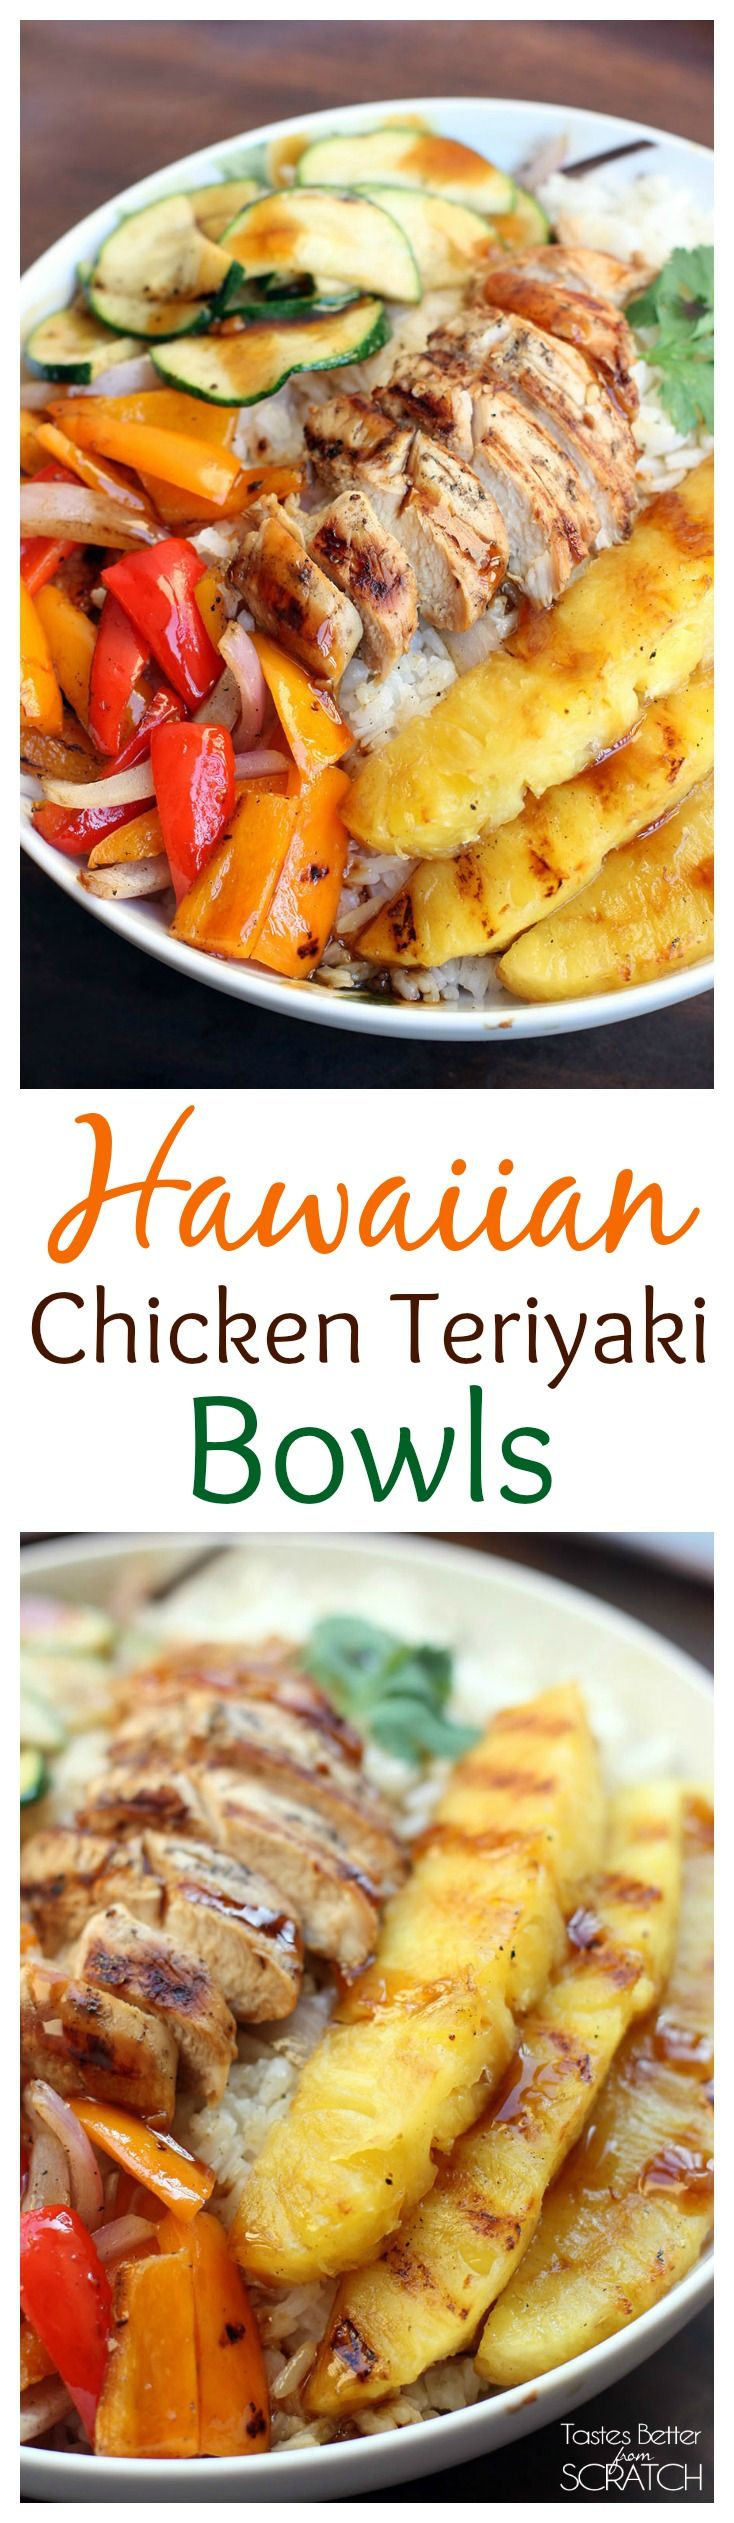 Hawaiin Chicken Teryiaki Bowl @ www.sweetparrishplace.com